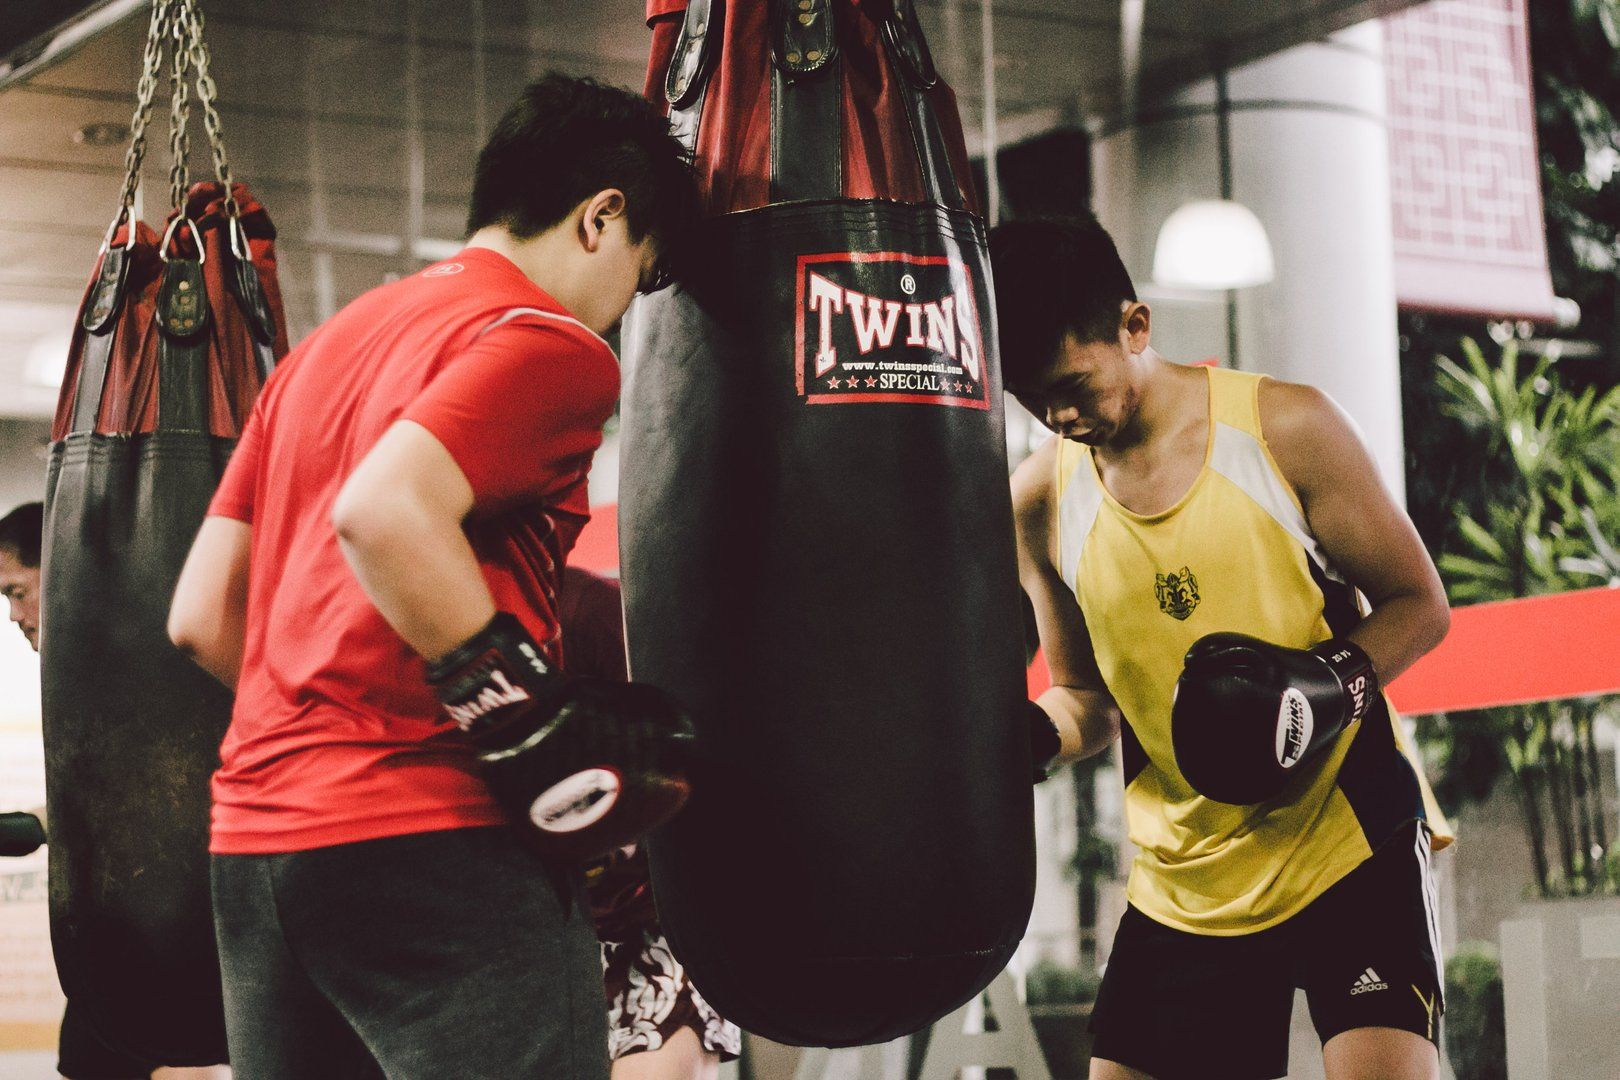 Training with a heavy bag helps improve your technique and coordination.